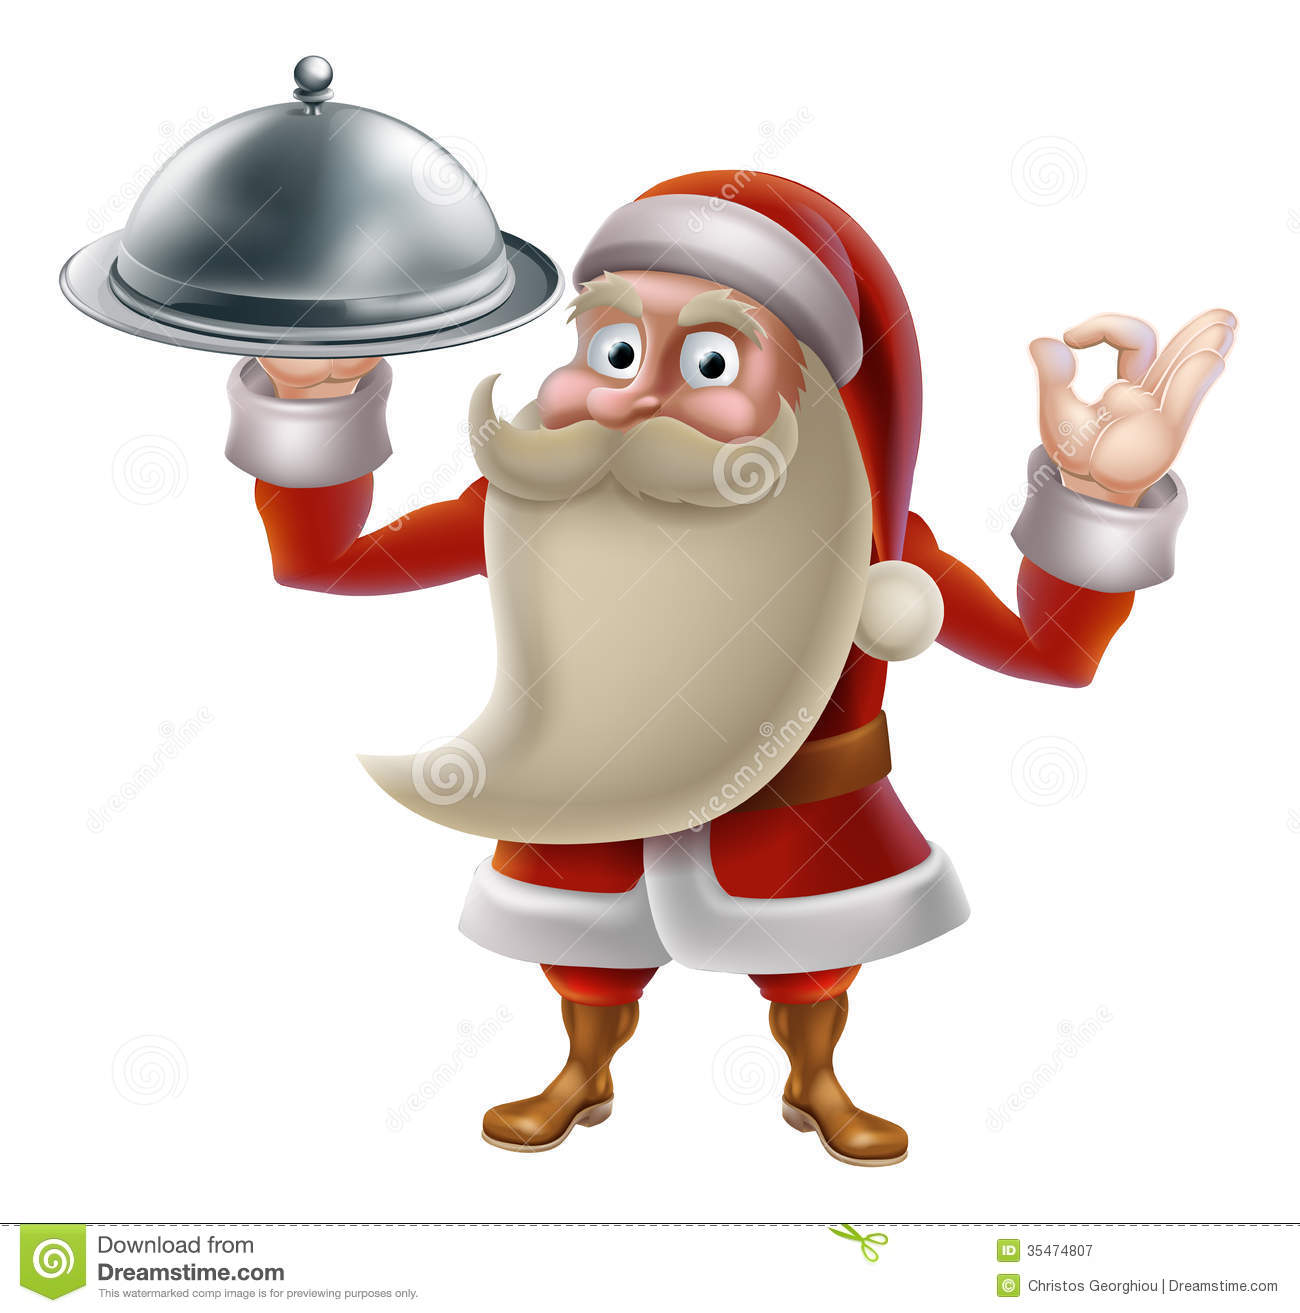 Displaying 20 Images For Christmas Dinne-Displaying 20 Images For Christmas Dinner Table Cartoon-13